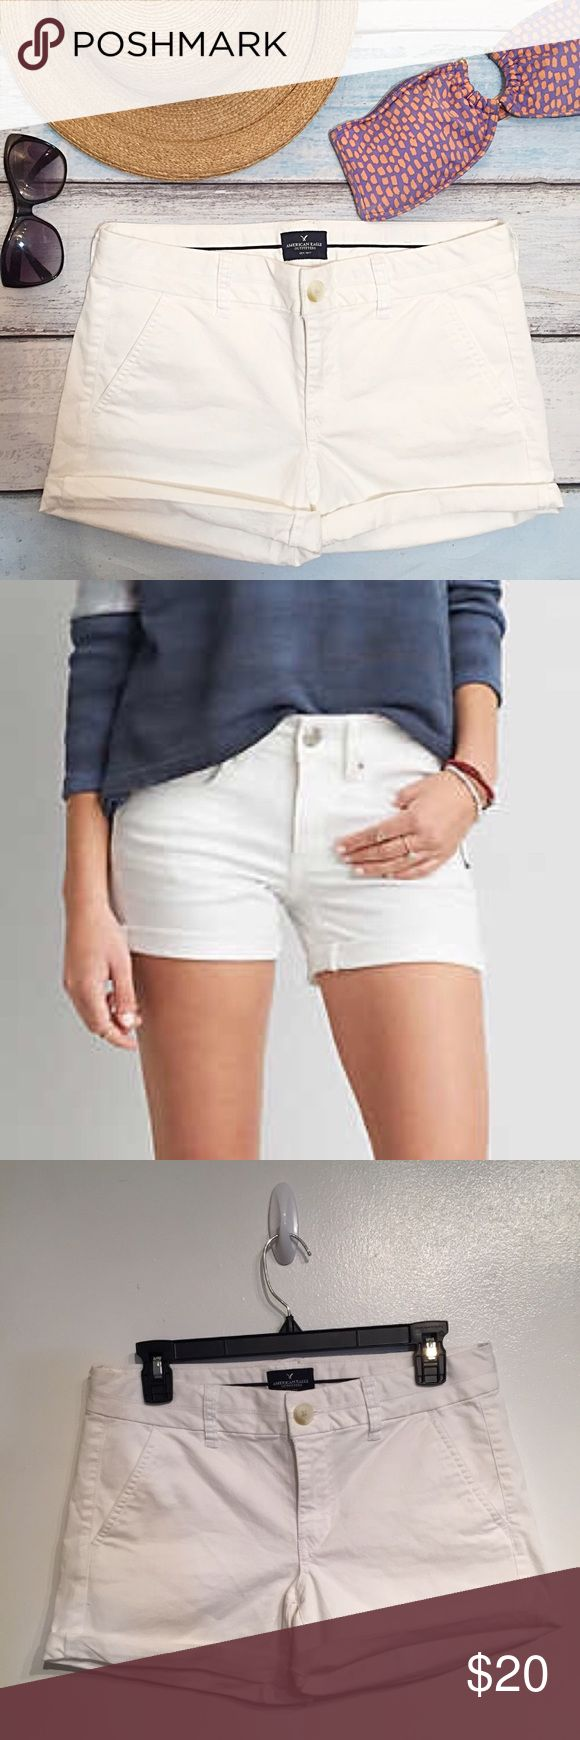 """American Eagle Outfitters White Midi Shorts American Eagle Outfitters white Midi shorts. Great basic staple item. Size 6. Measures 16"""" flat at waist, and 4"""" inseam while cuffed or 5.5"""" inseam uncuffed. No modeling. Smoke free home. I do discount bundles. American Eagle Outfitters Shorts Jean Shorts"""